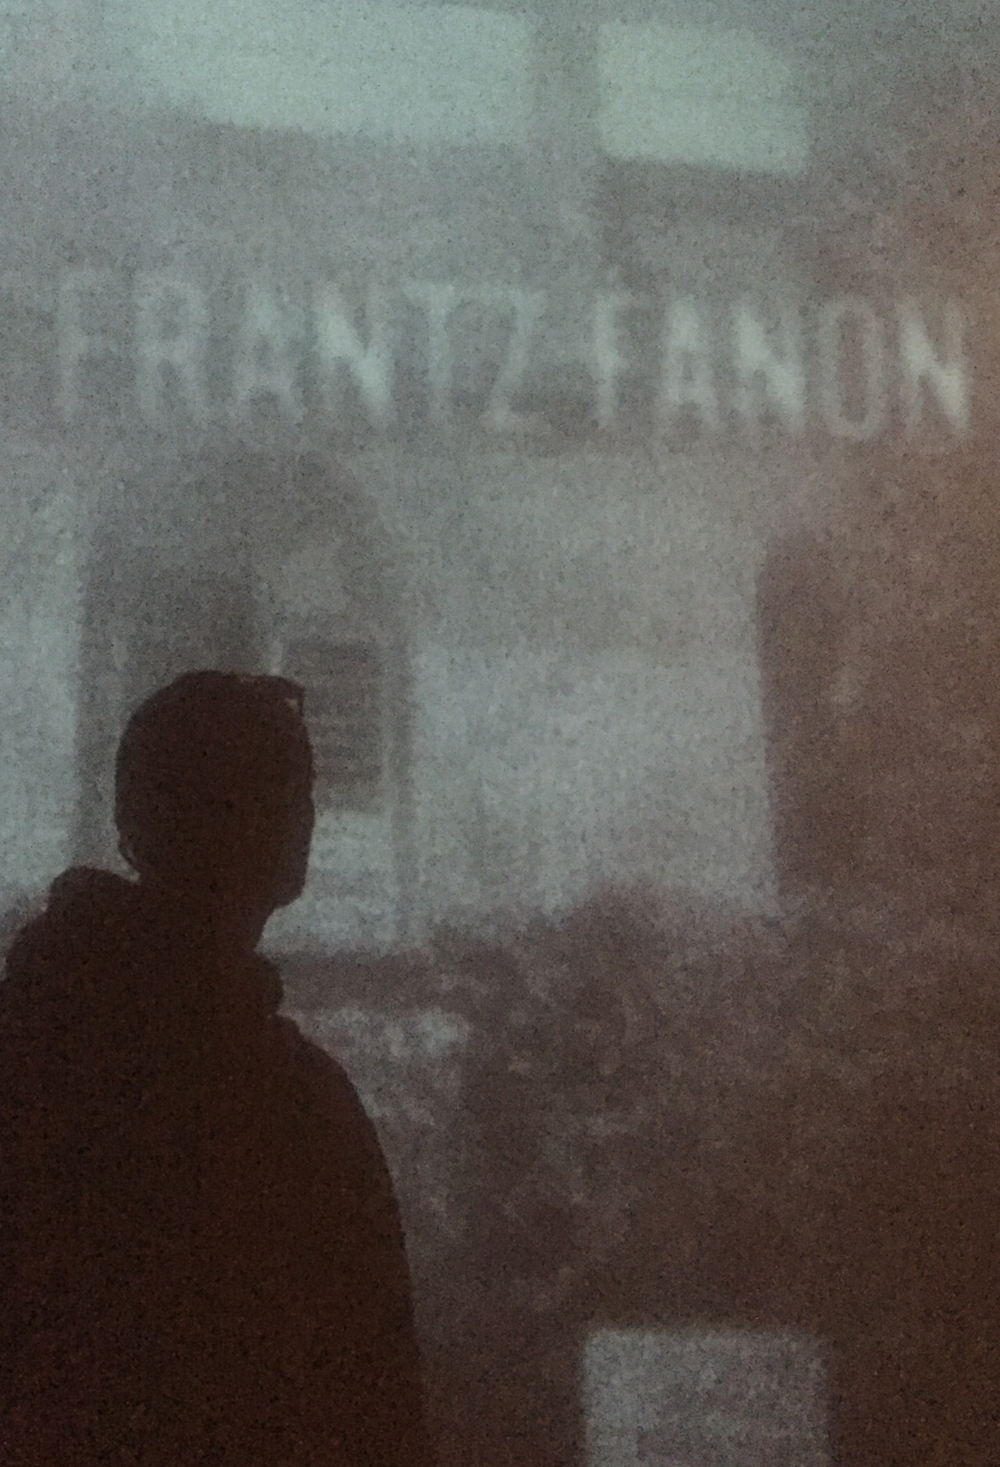 My shadow at the Frantz Fanon exhibition.